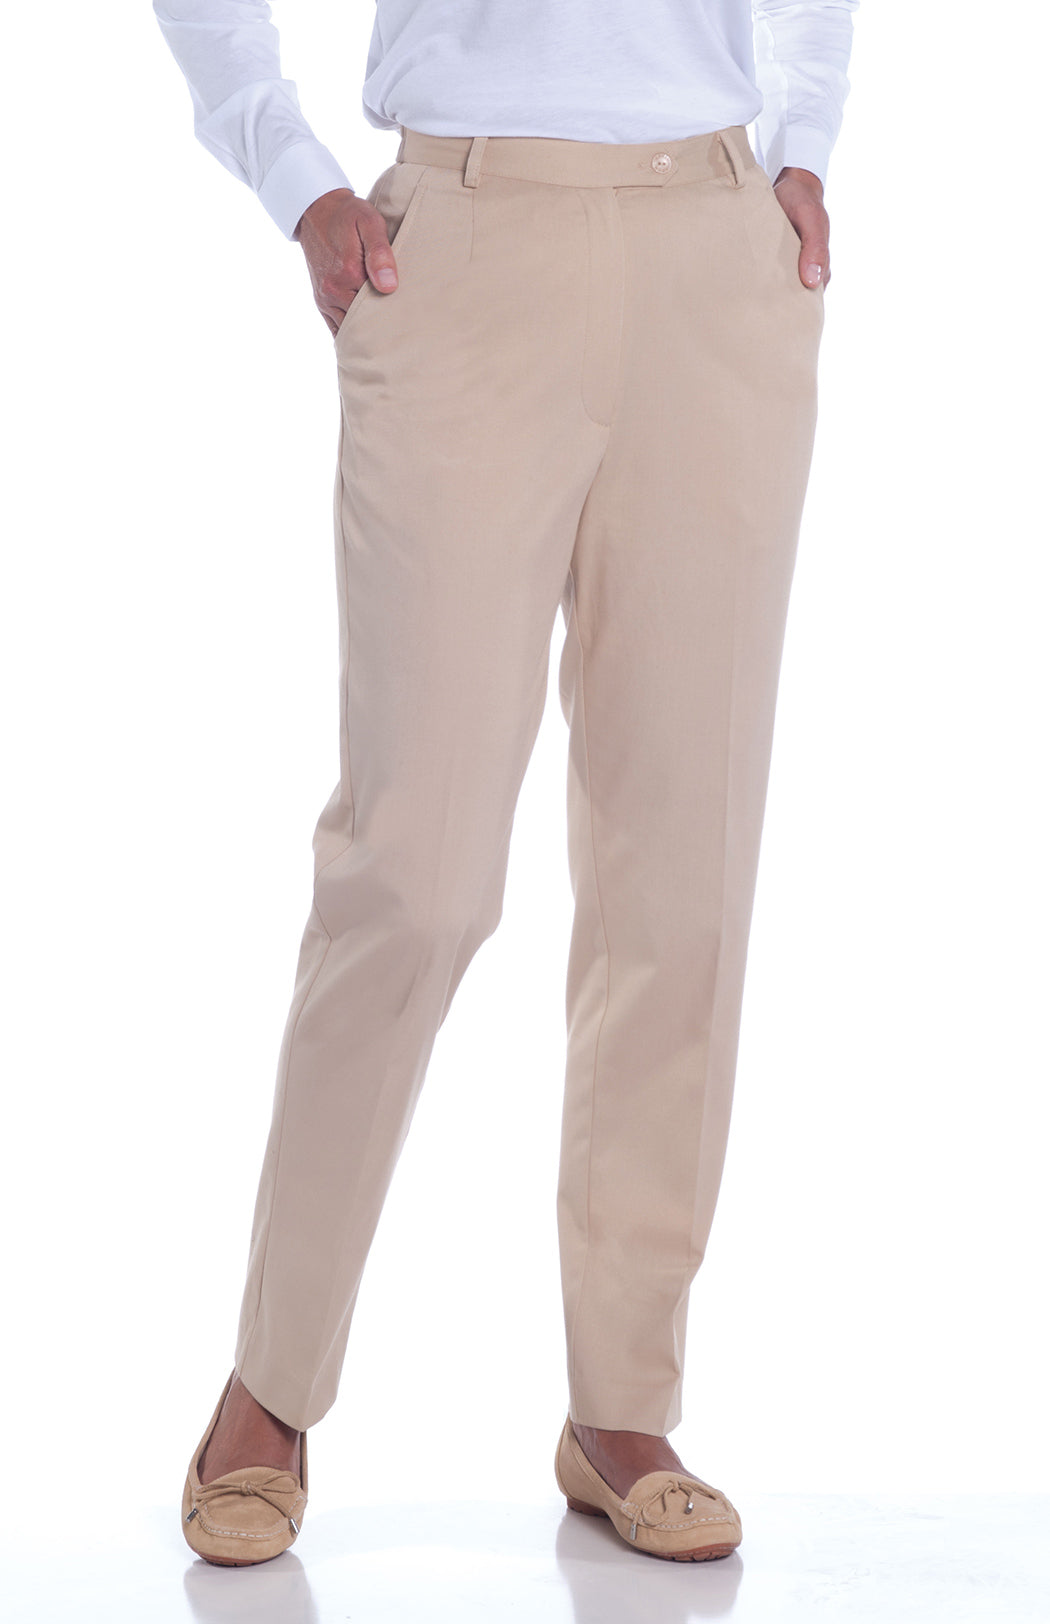 Stretch Twill Flat Front Pants</br>Sand S50